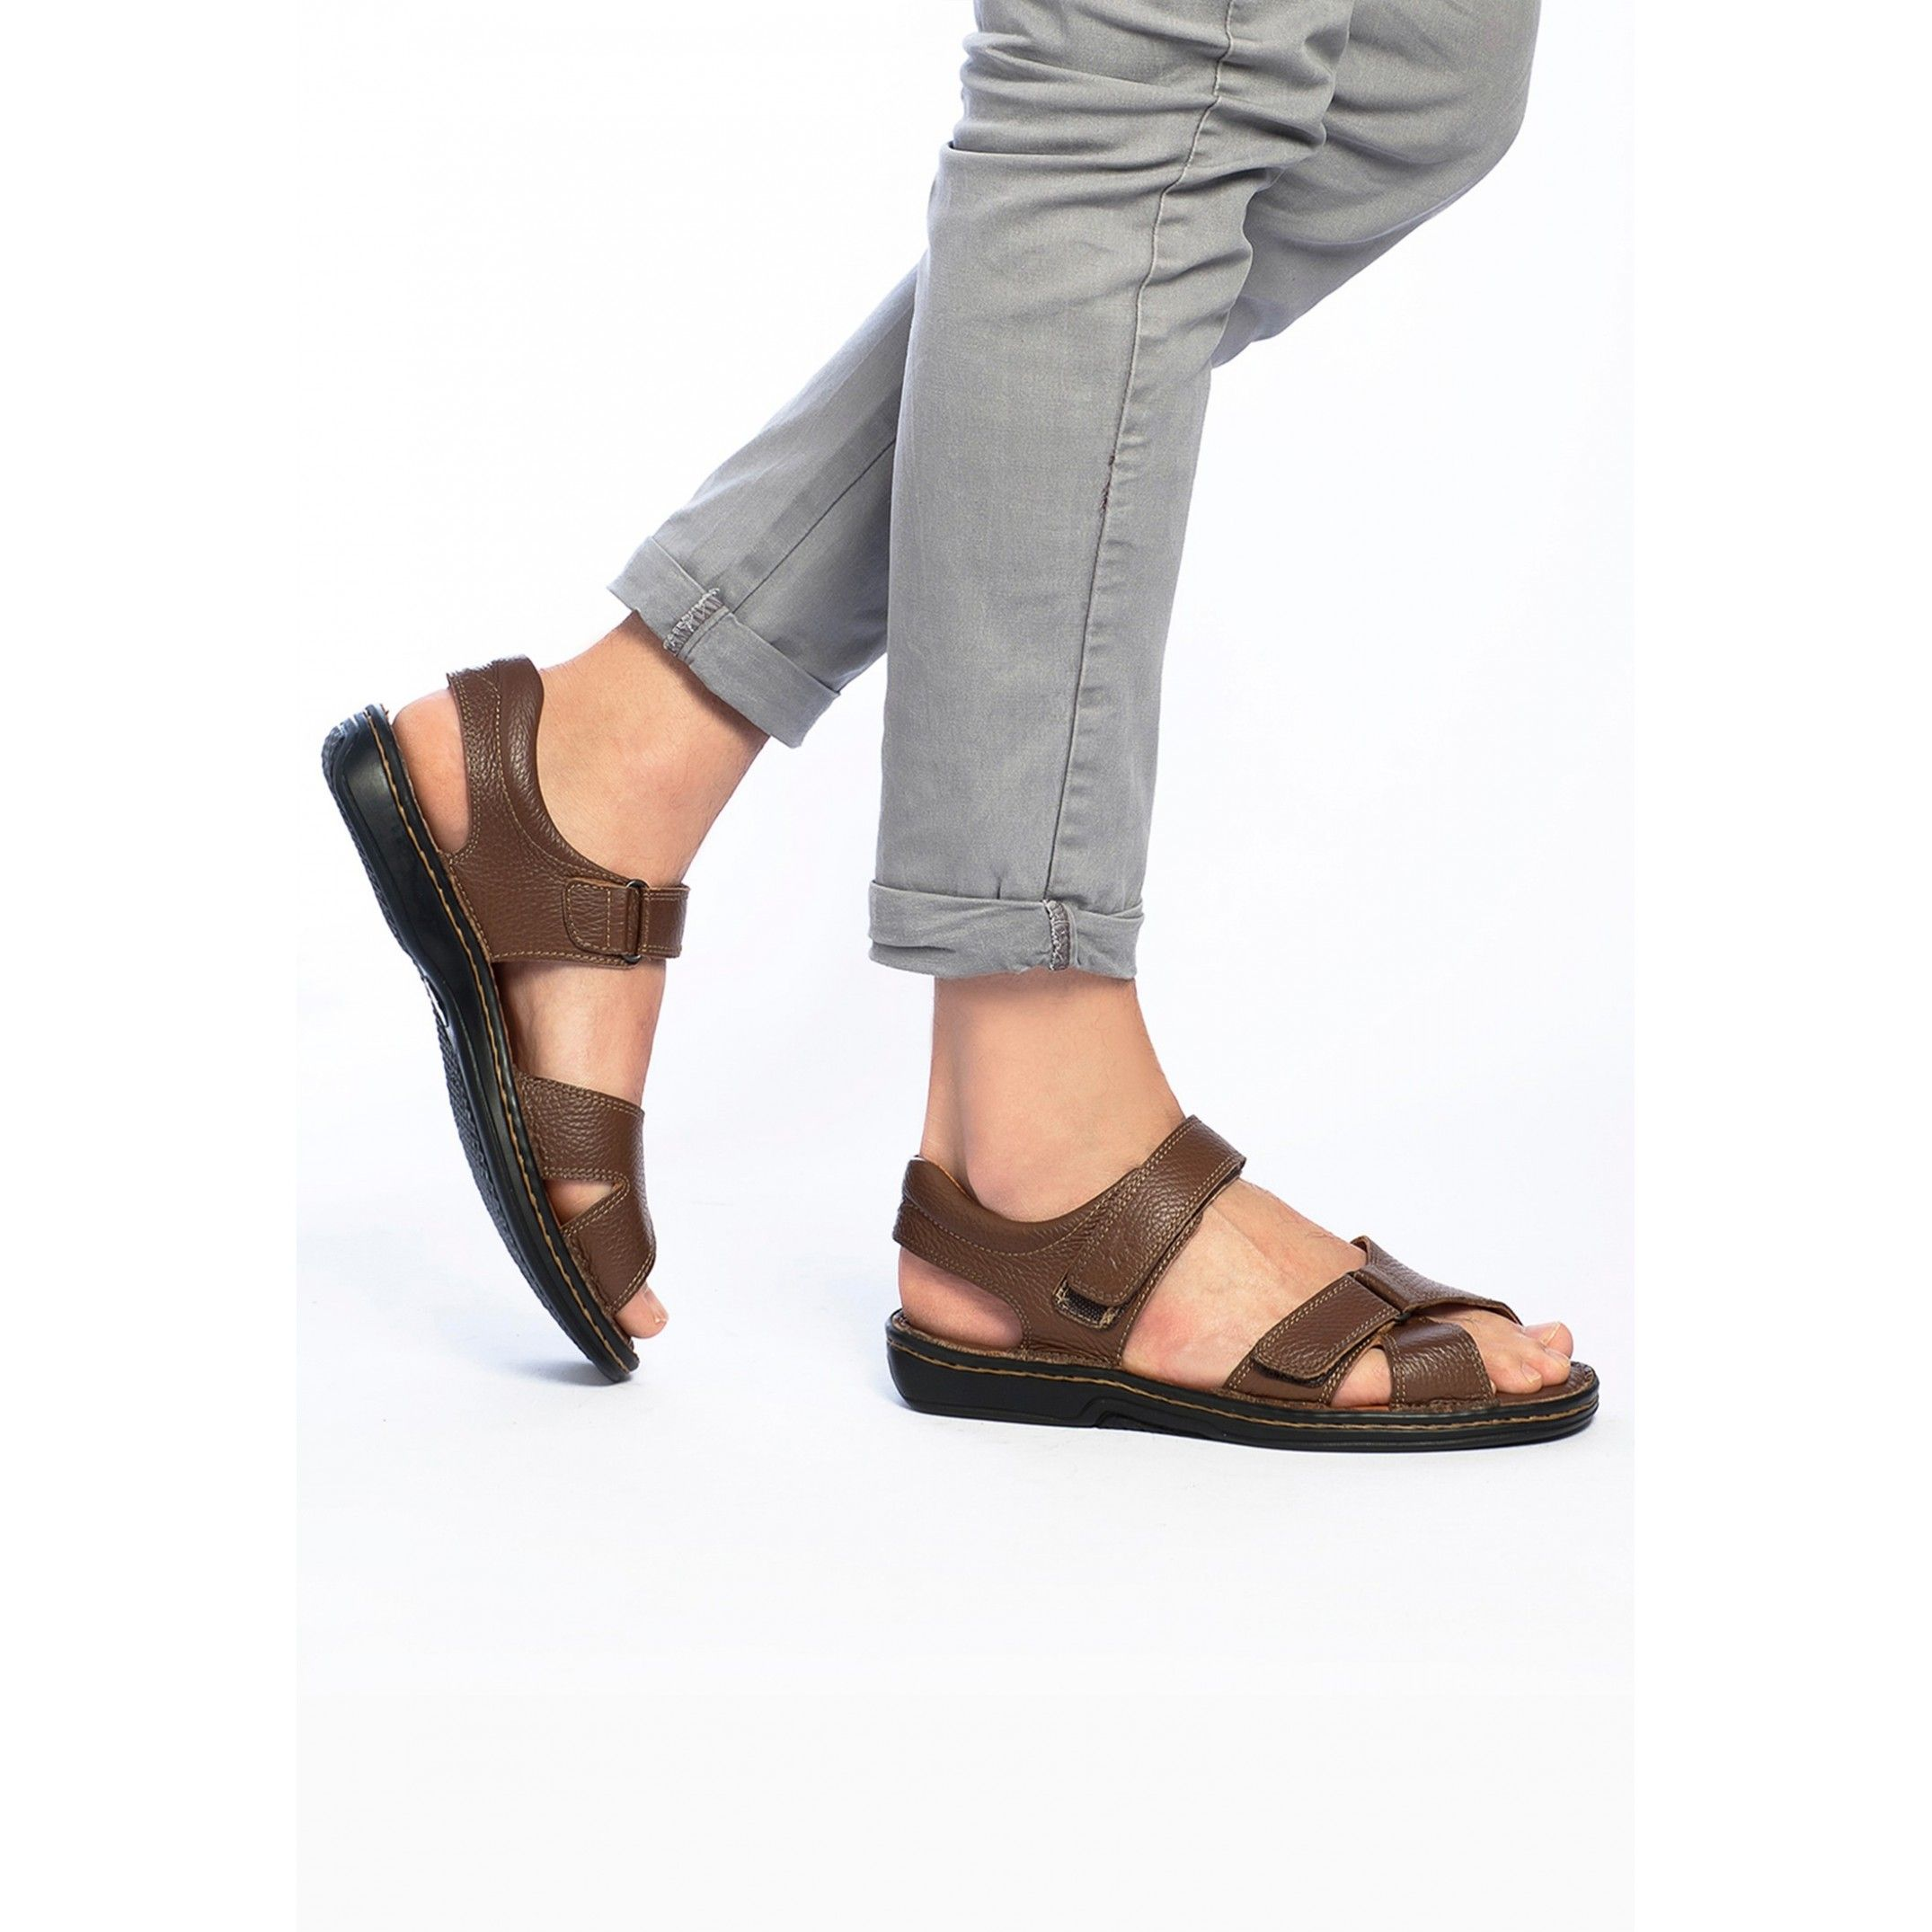 Leather Sandals for Men